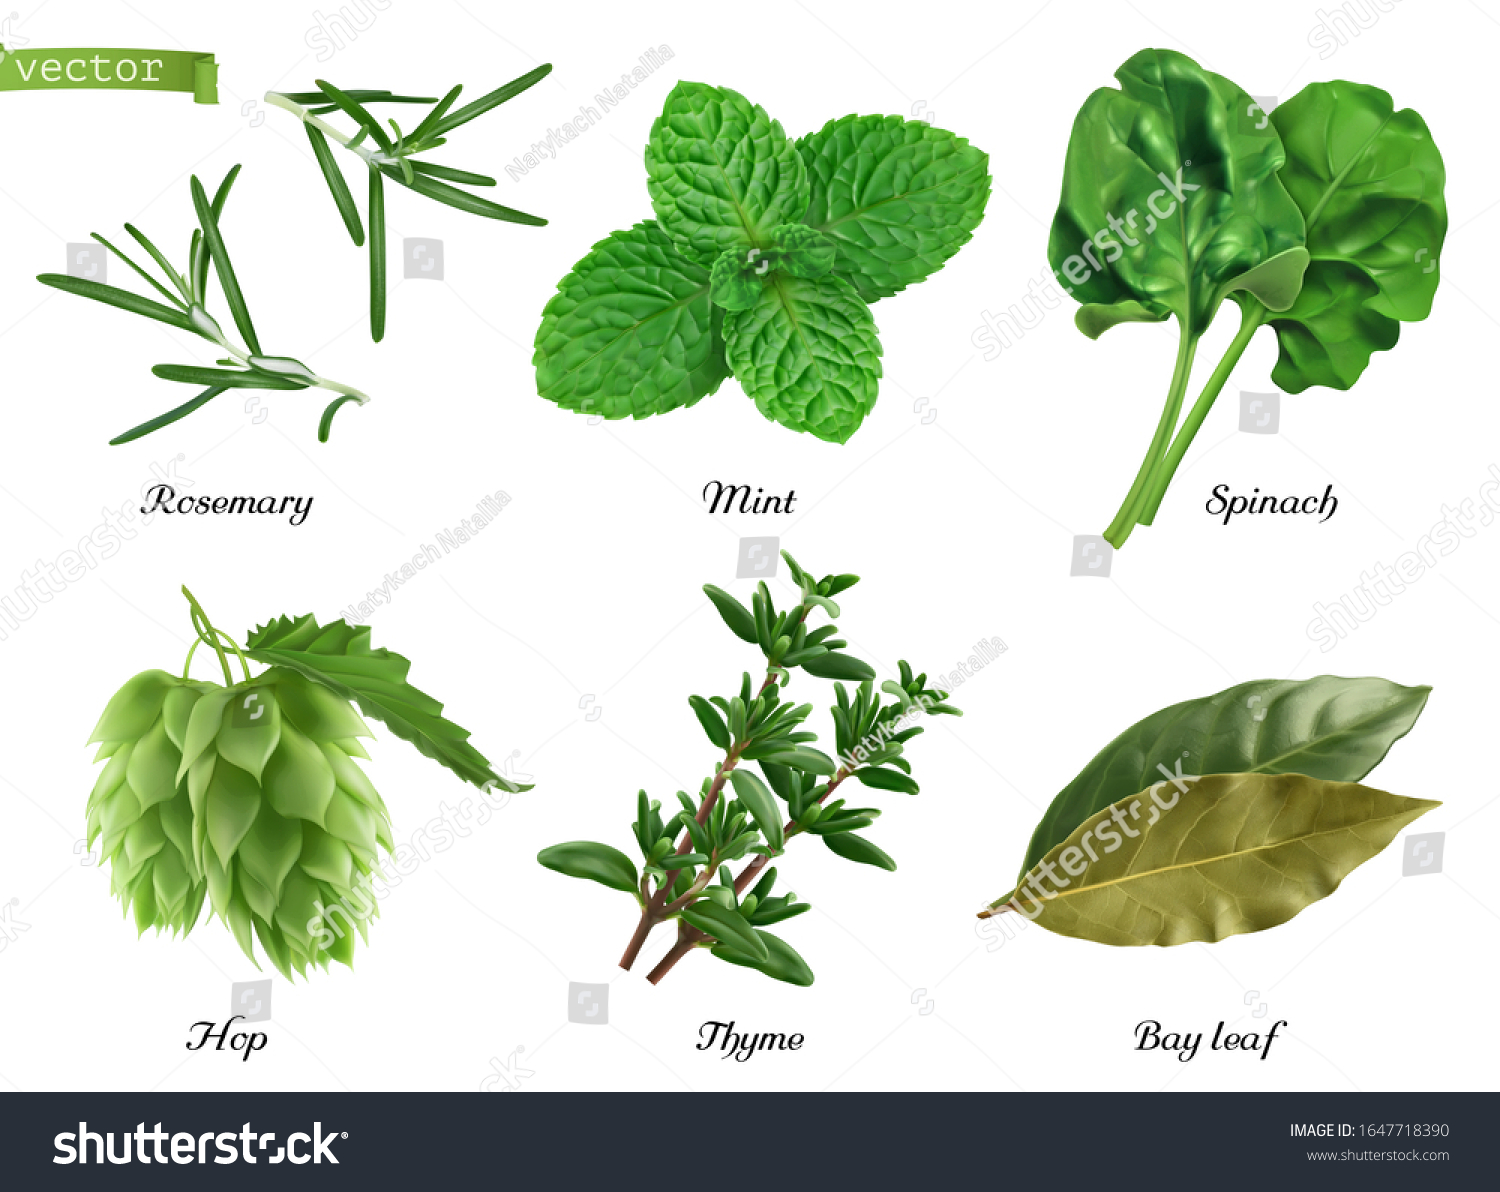 Greens and spices realistic vector set. Rosemary, mint, spinach, hop, thyme, bay leaf. Food illustration #1647718390